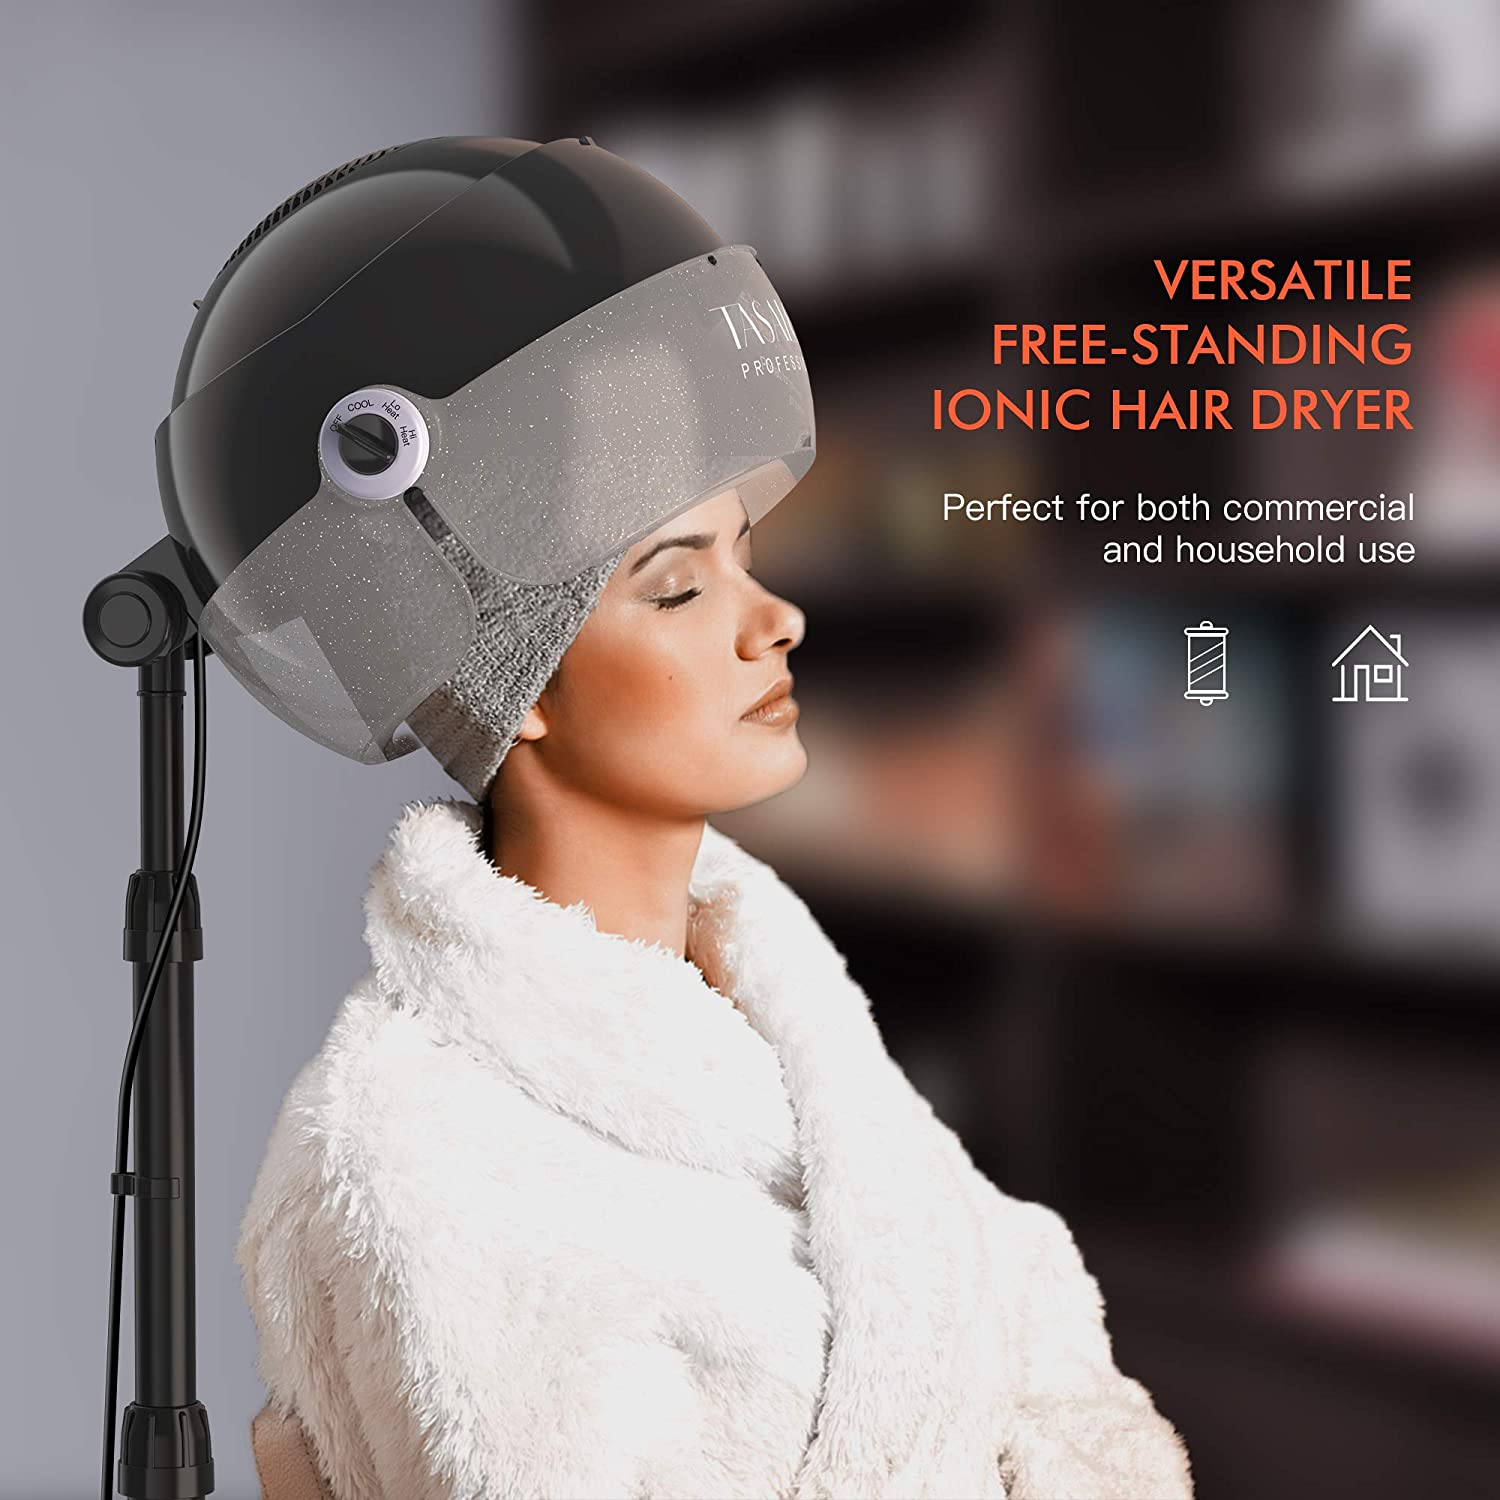 TASALON Ionic Hooded Dryer - 1875W Bonnet Hair Dryer - Sit Under Hair Dryer for Home and Salon - Professional Hair Dryer Hood with 3 Temperature Settings - Standing Hair Dryer - Portable Hair Dryer : Beauty & Personal Care